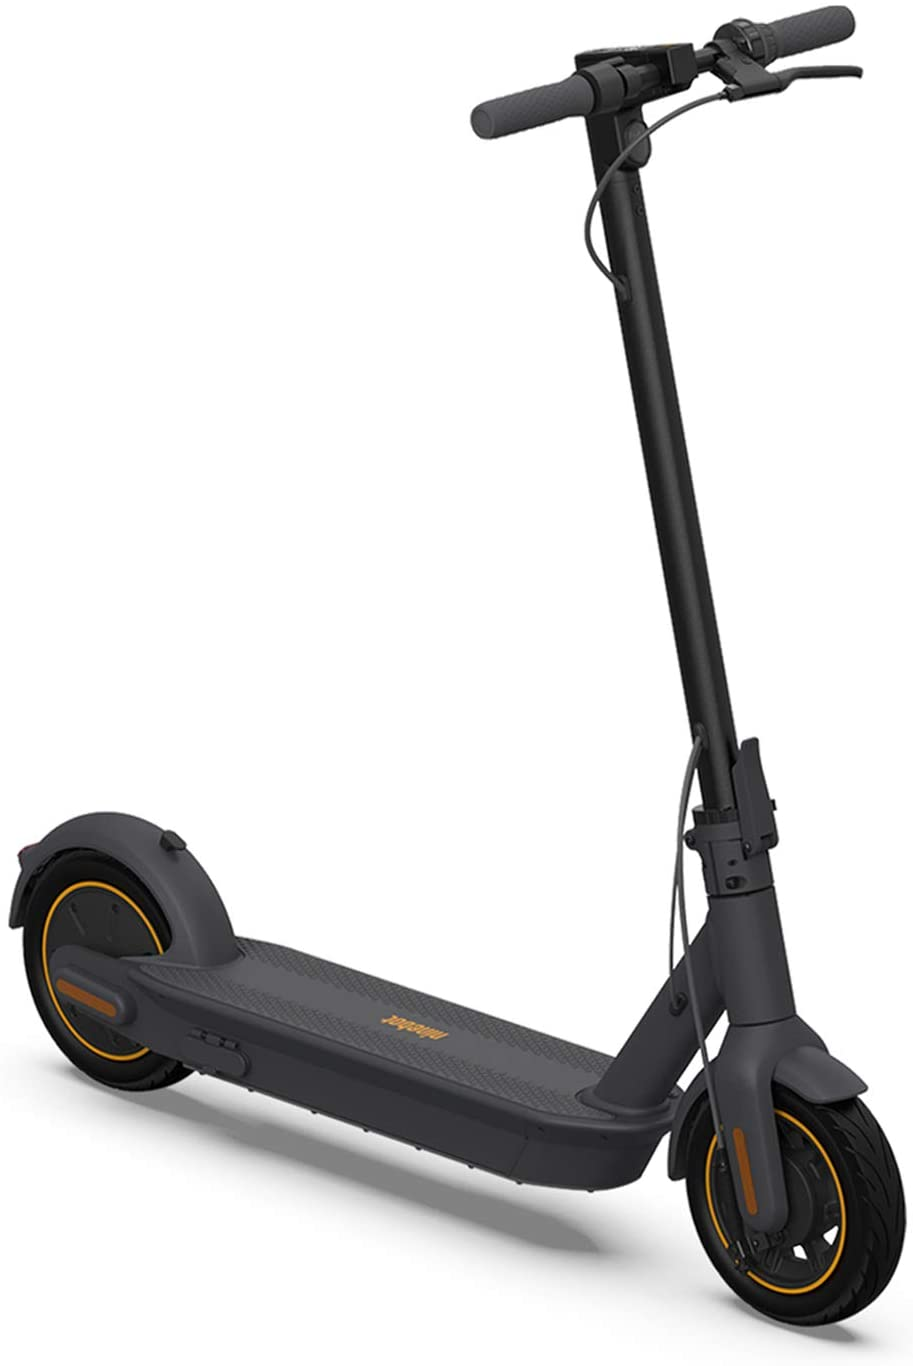 Ninebot by Segway Max G30 Electric Scooter - High Power Motor